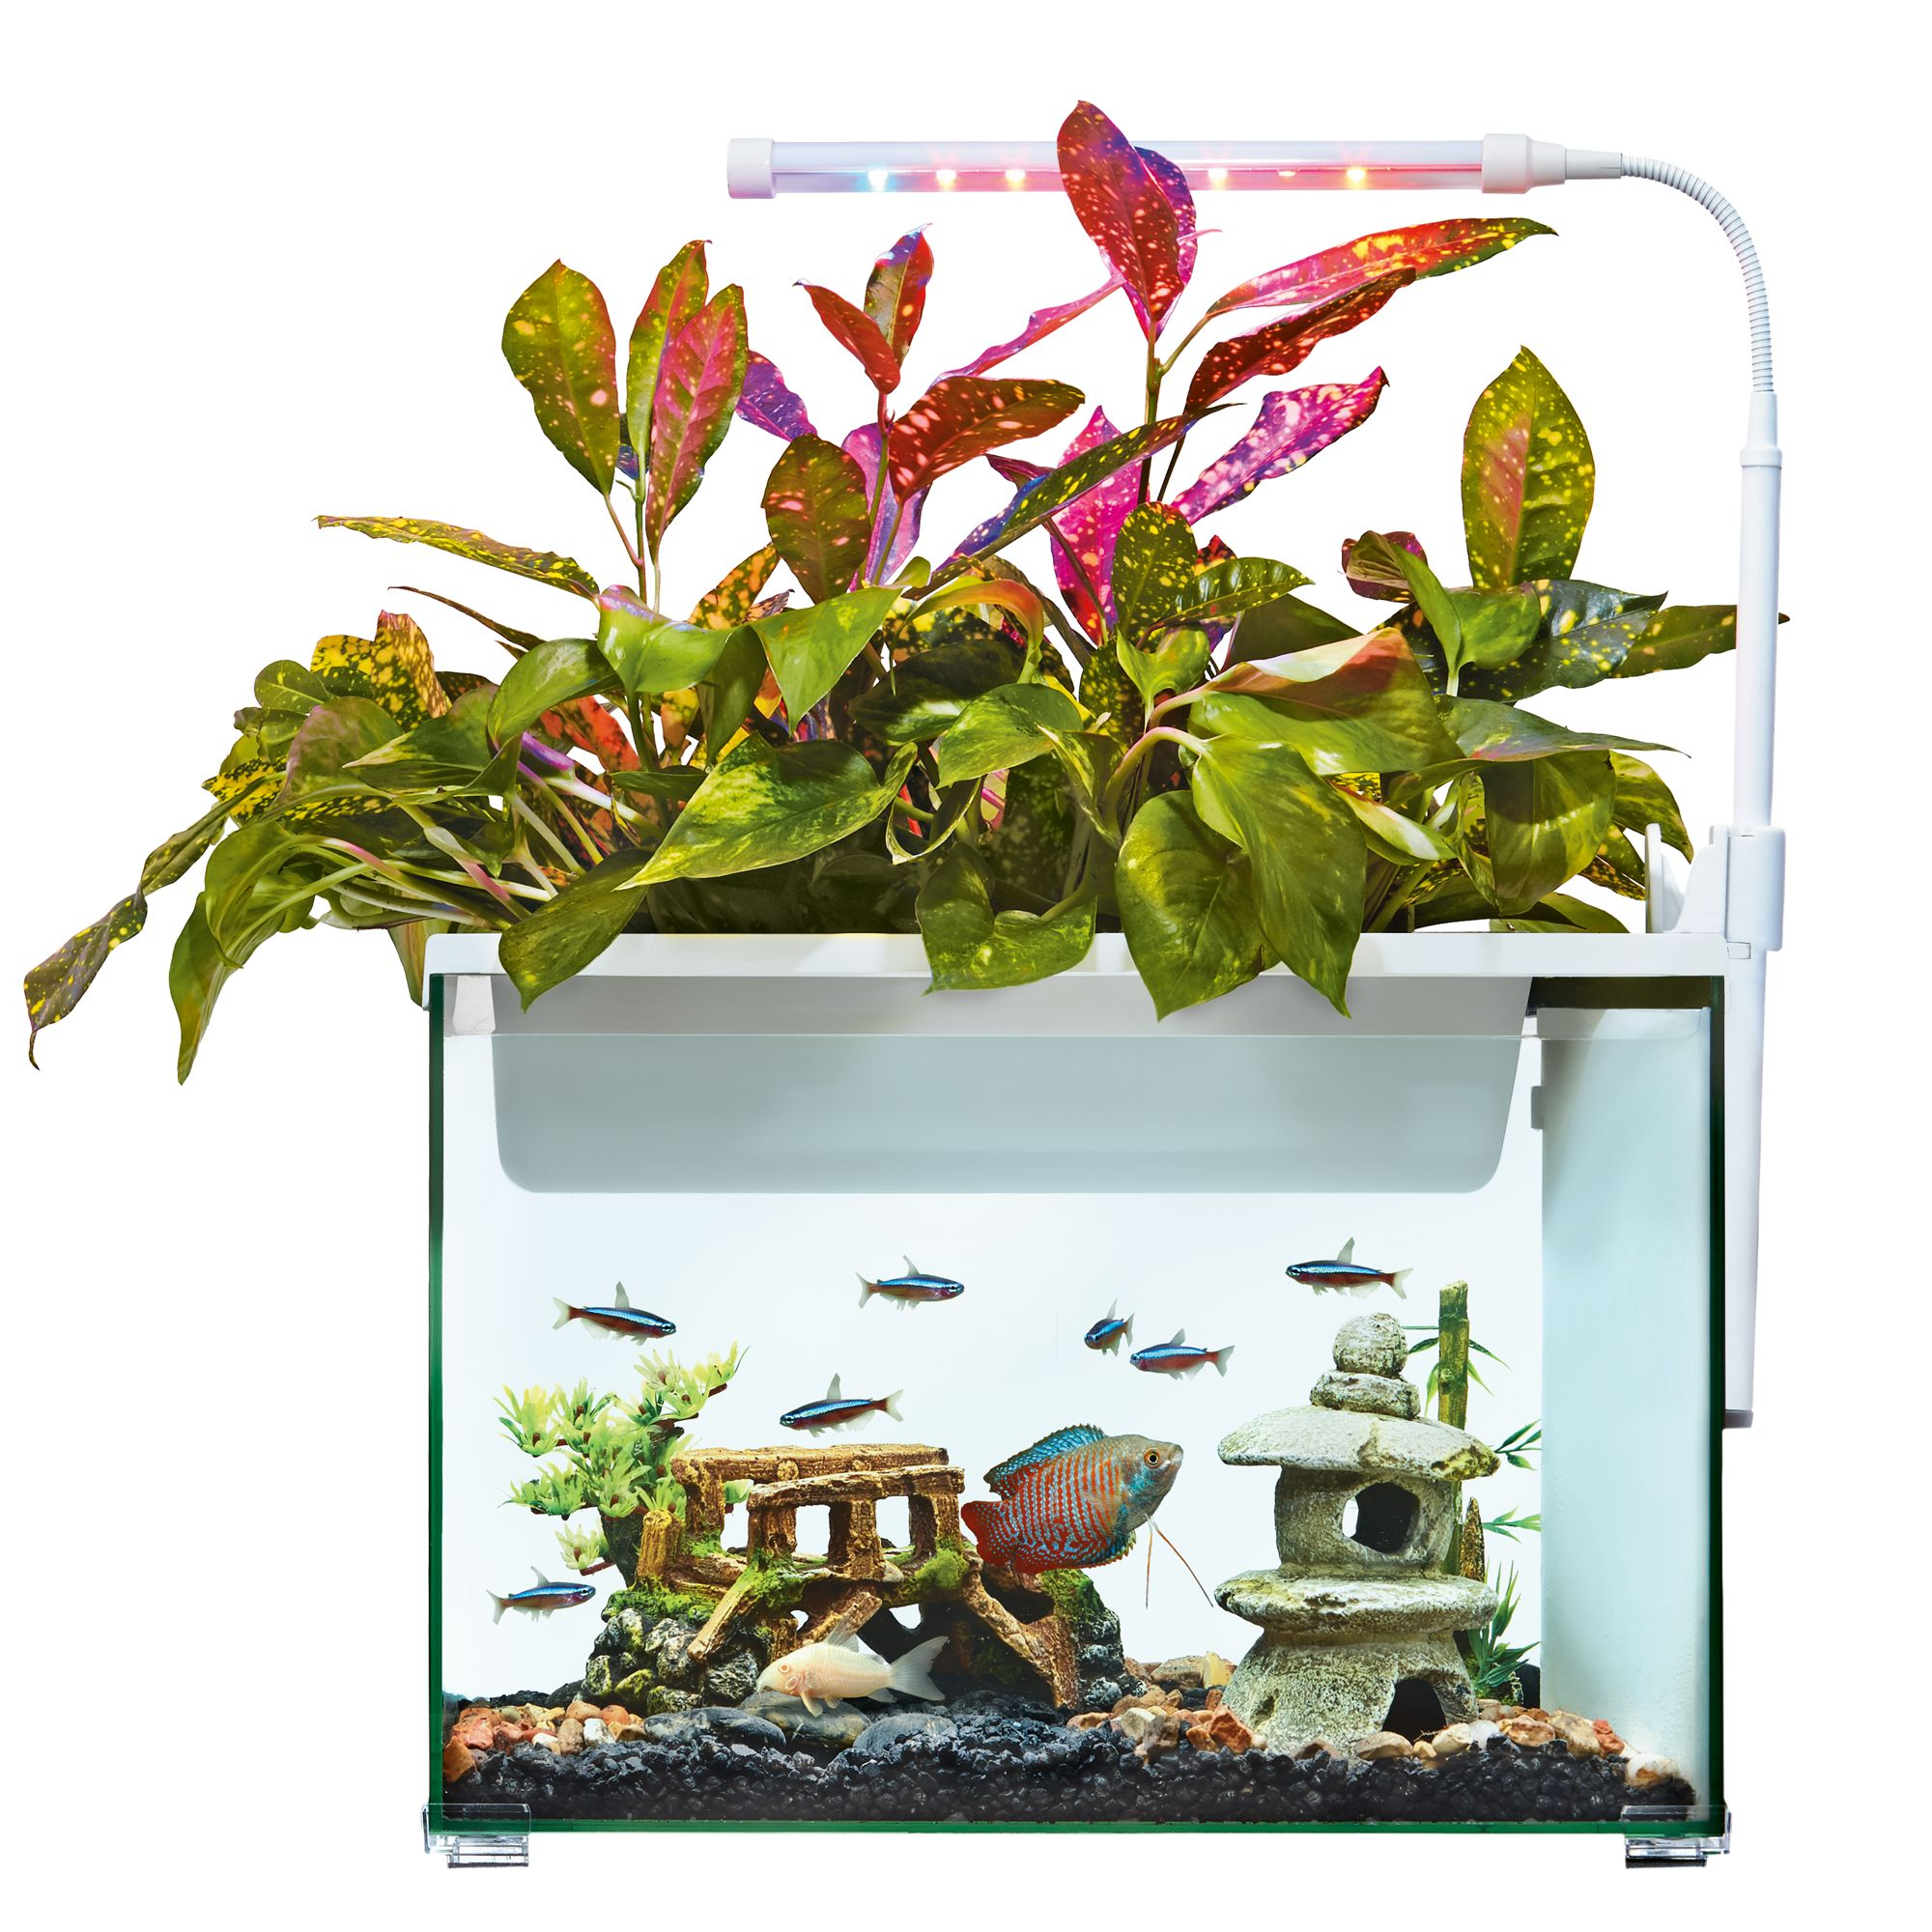 Aquarium top usa page 2 for 5 gallon fish tanks